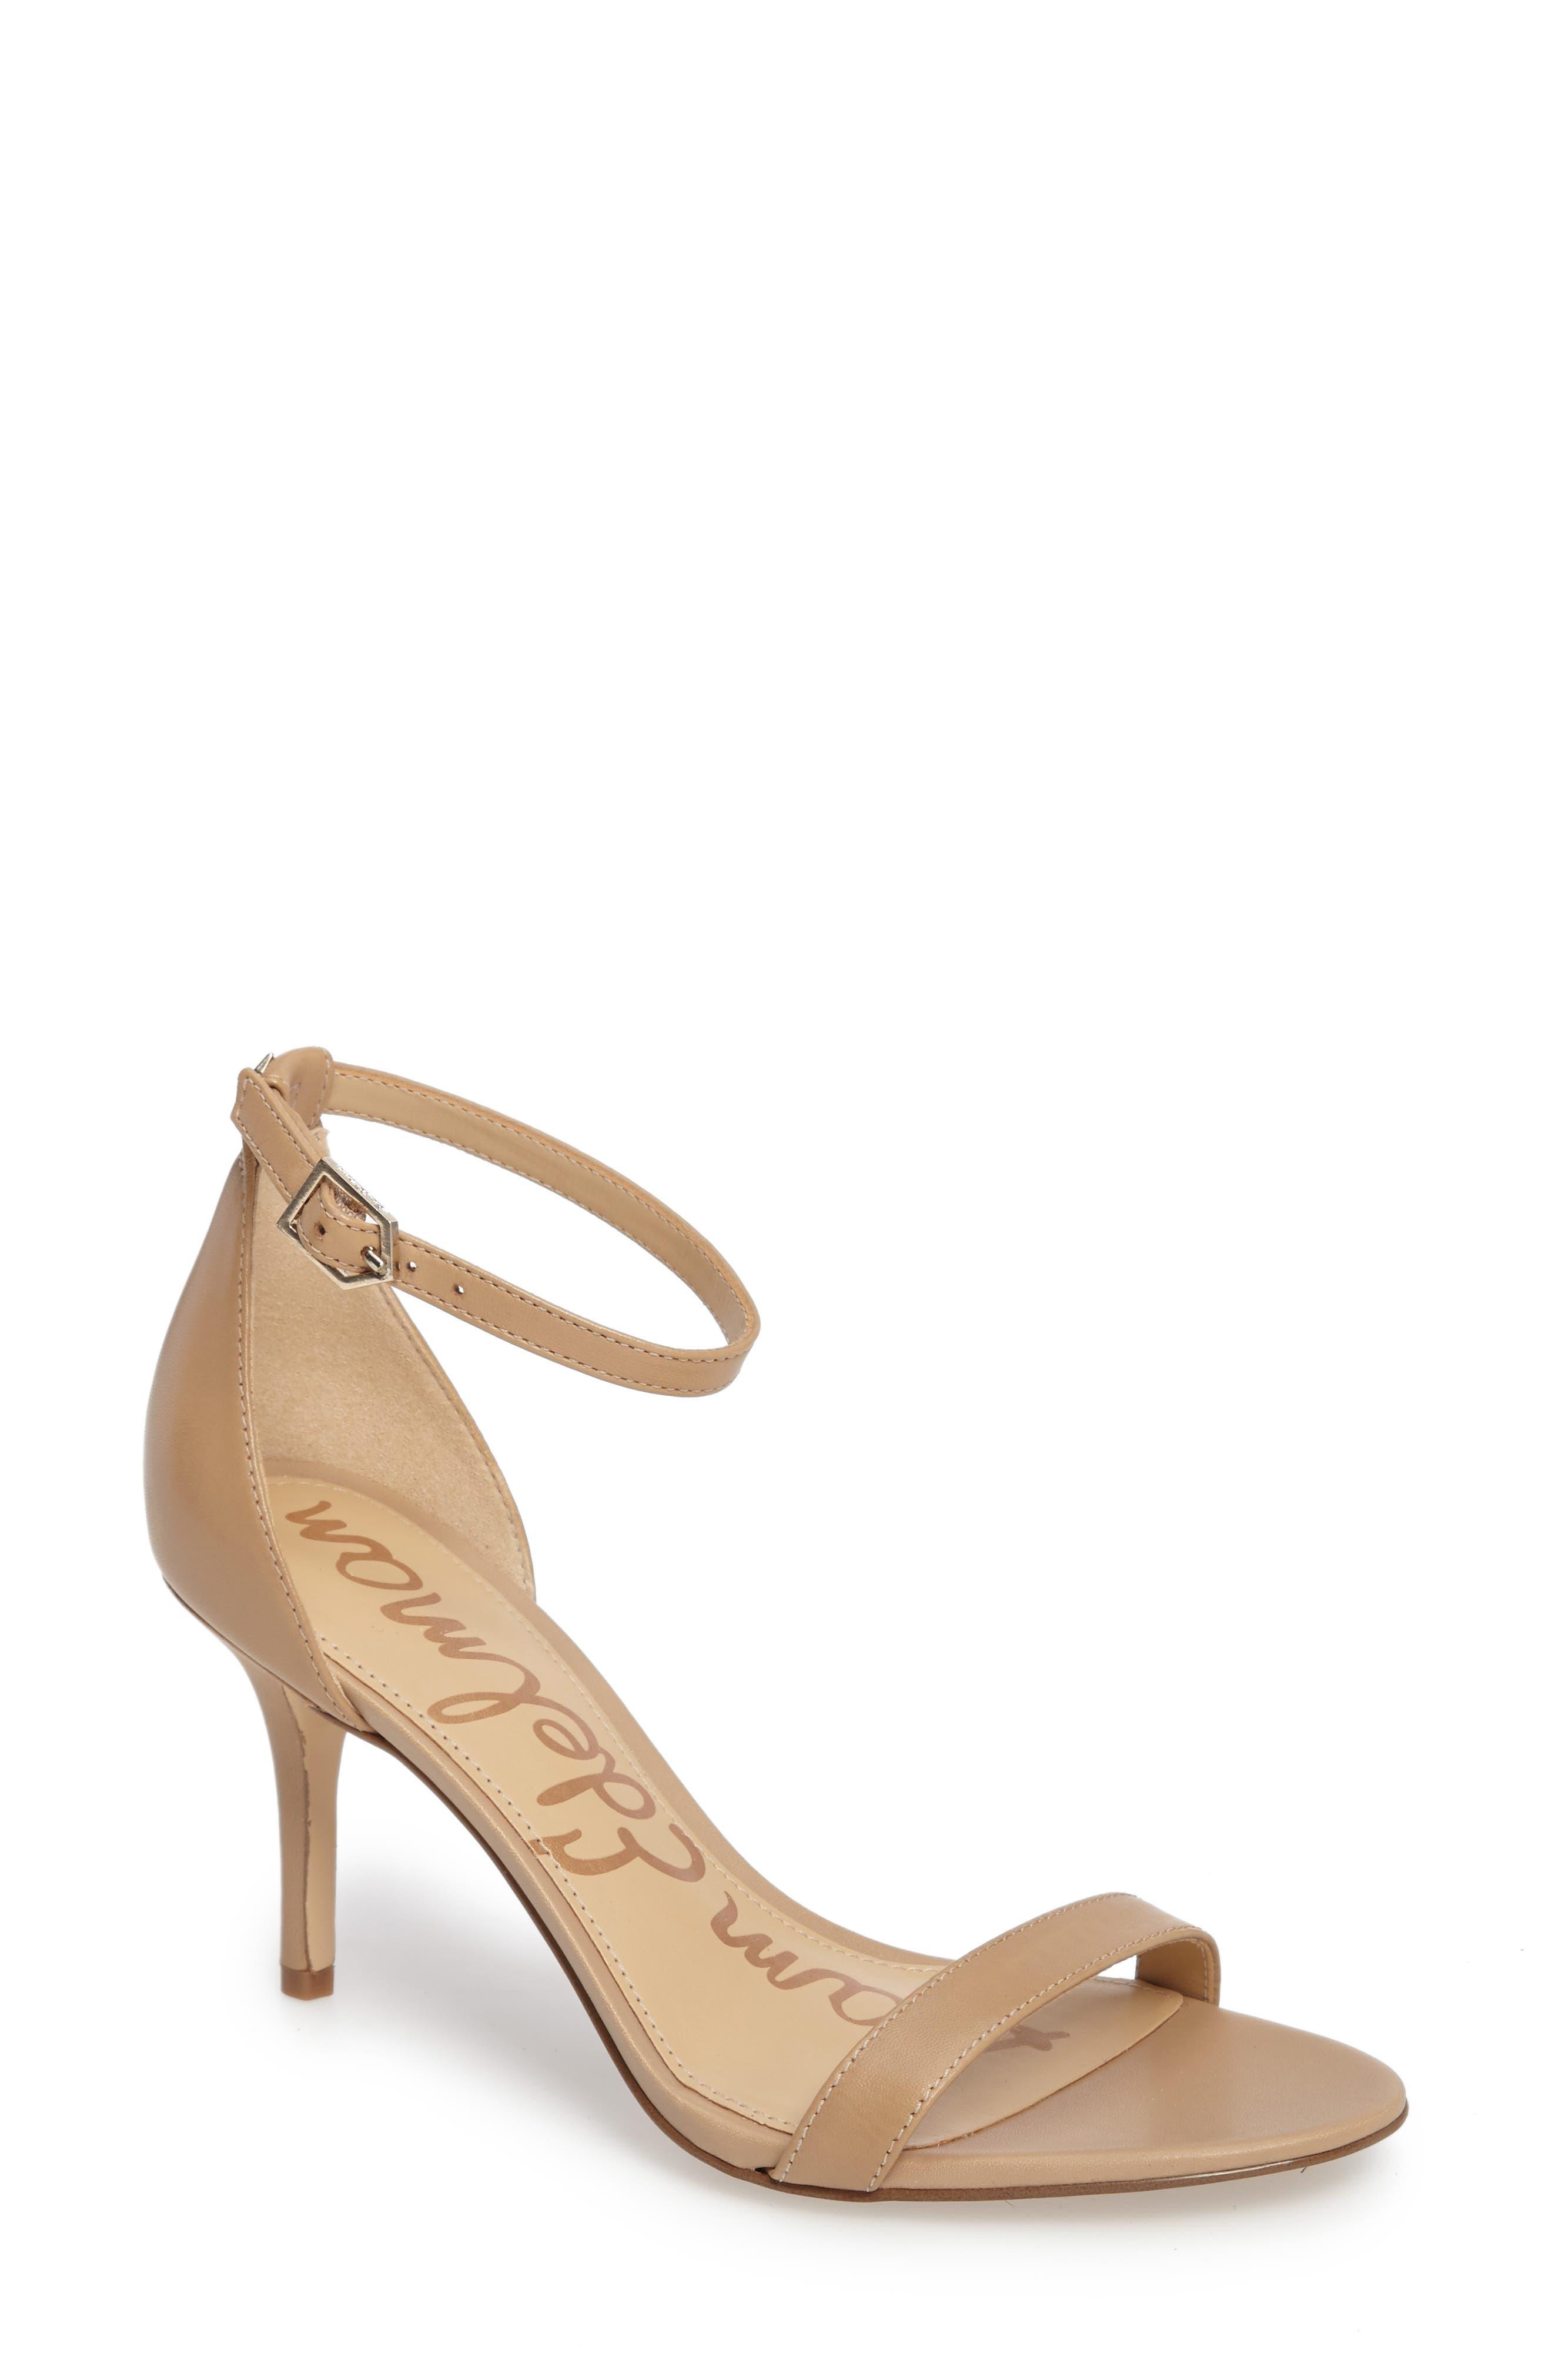 Patti Strappy Sandal,                             Main thumbnail 1, color,                             Classic Nude Leather